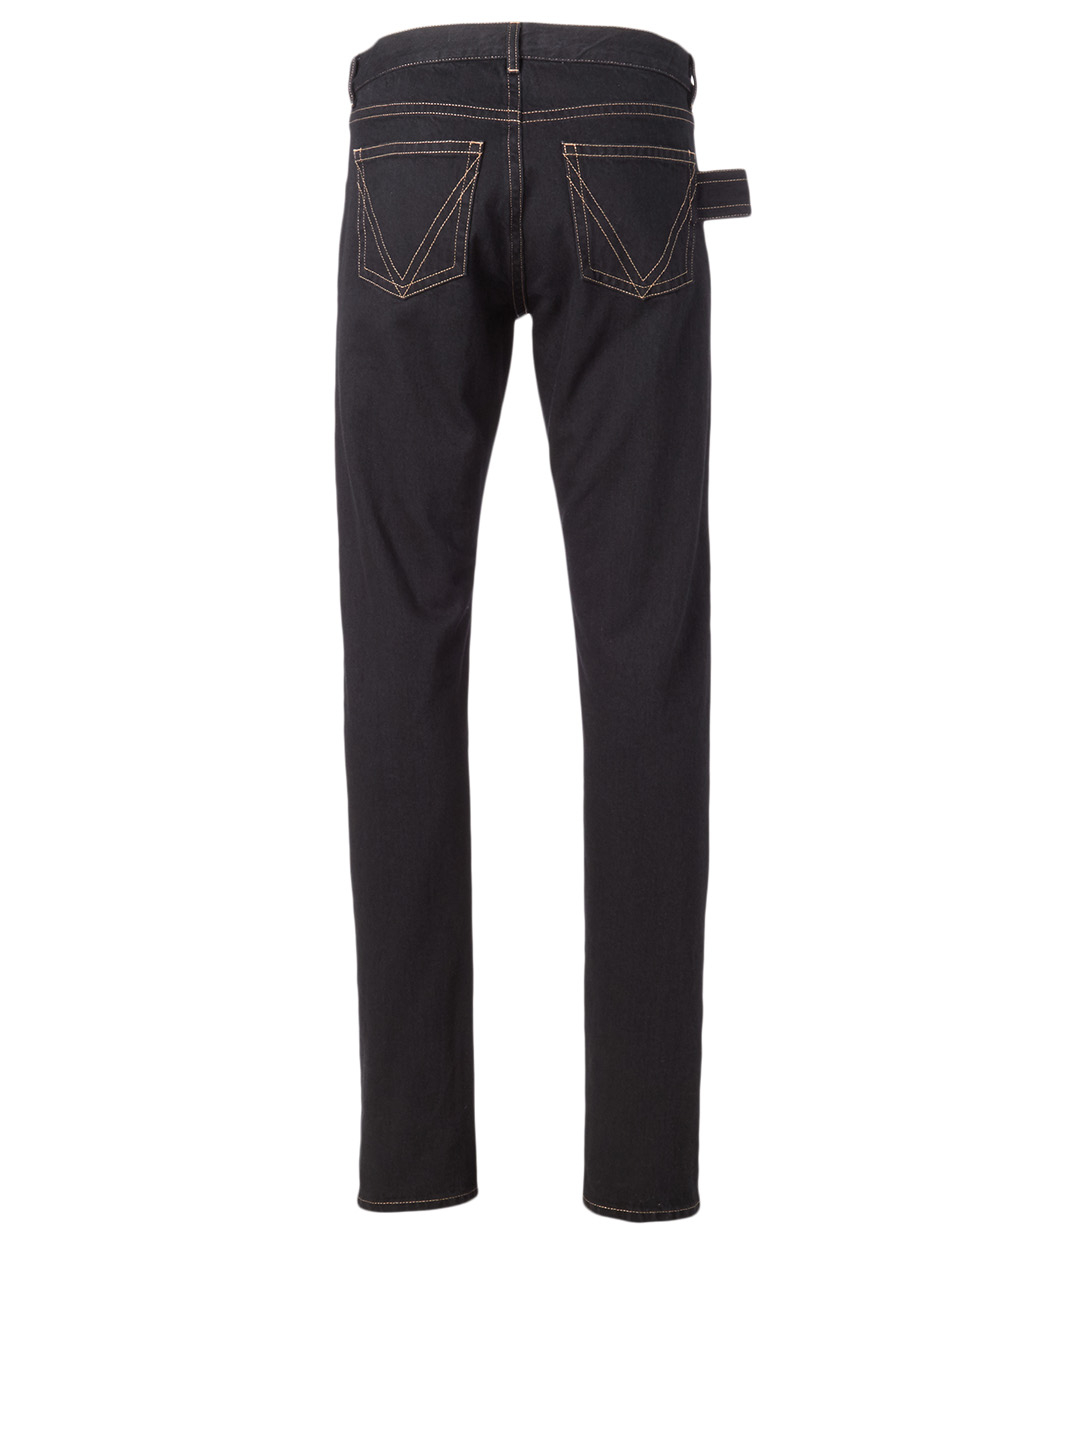 BOTTEGA VENETA Selvedge Denim Jeans Men's Black